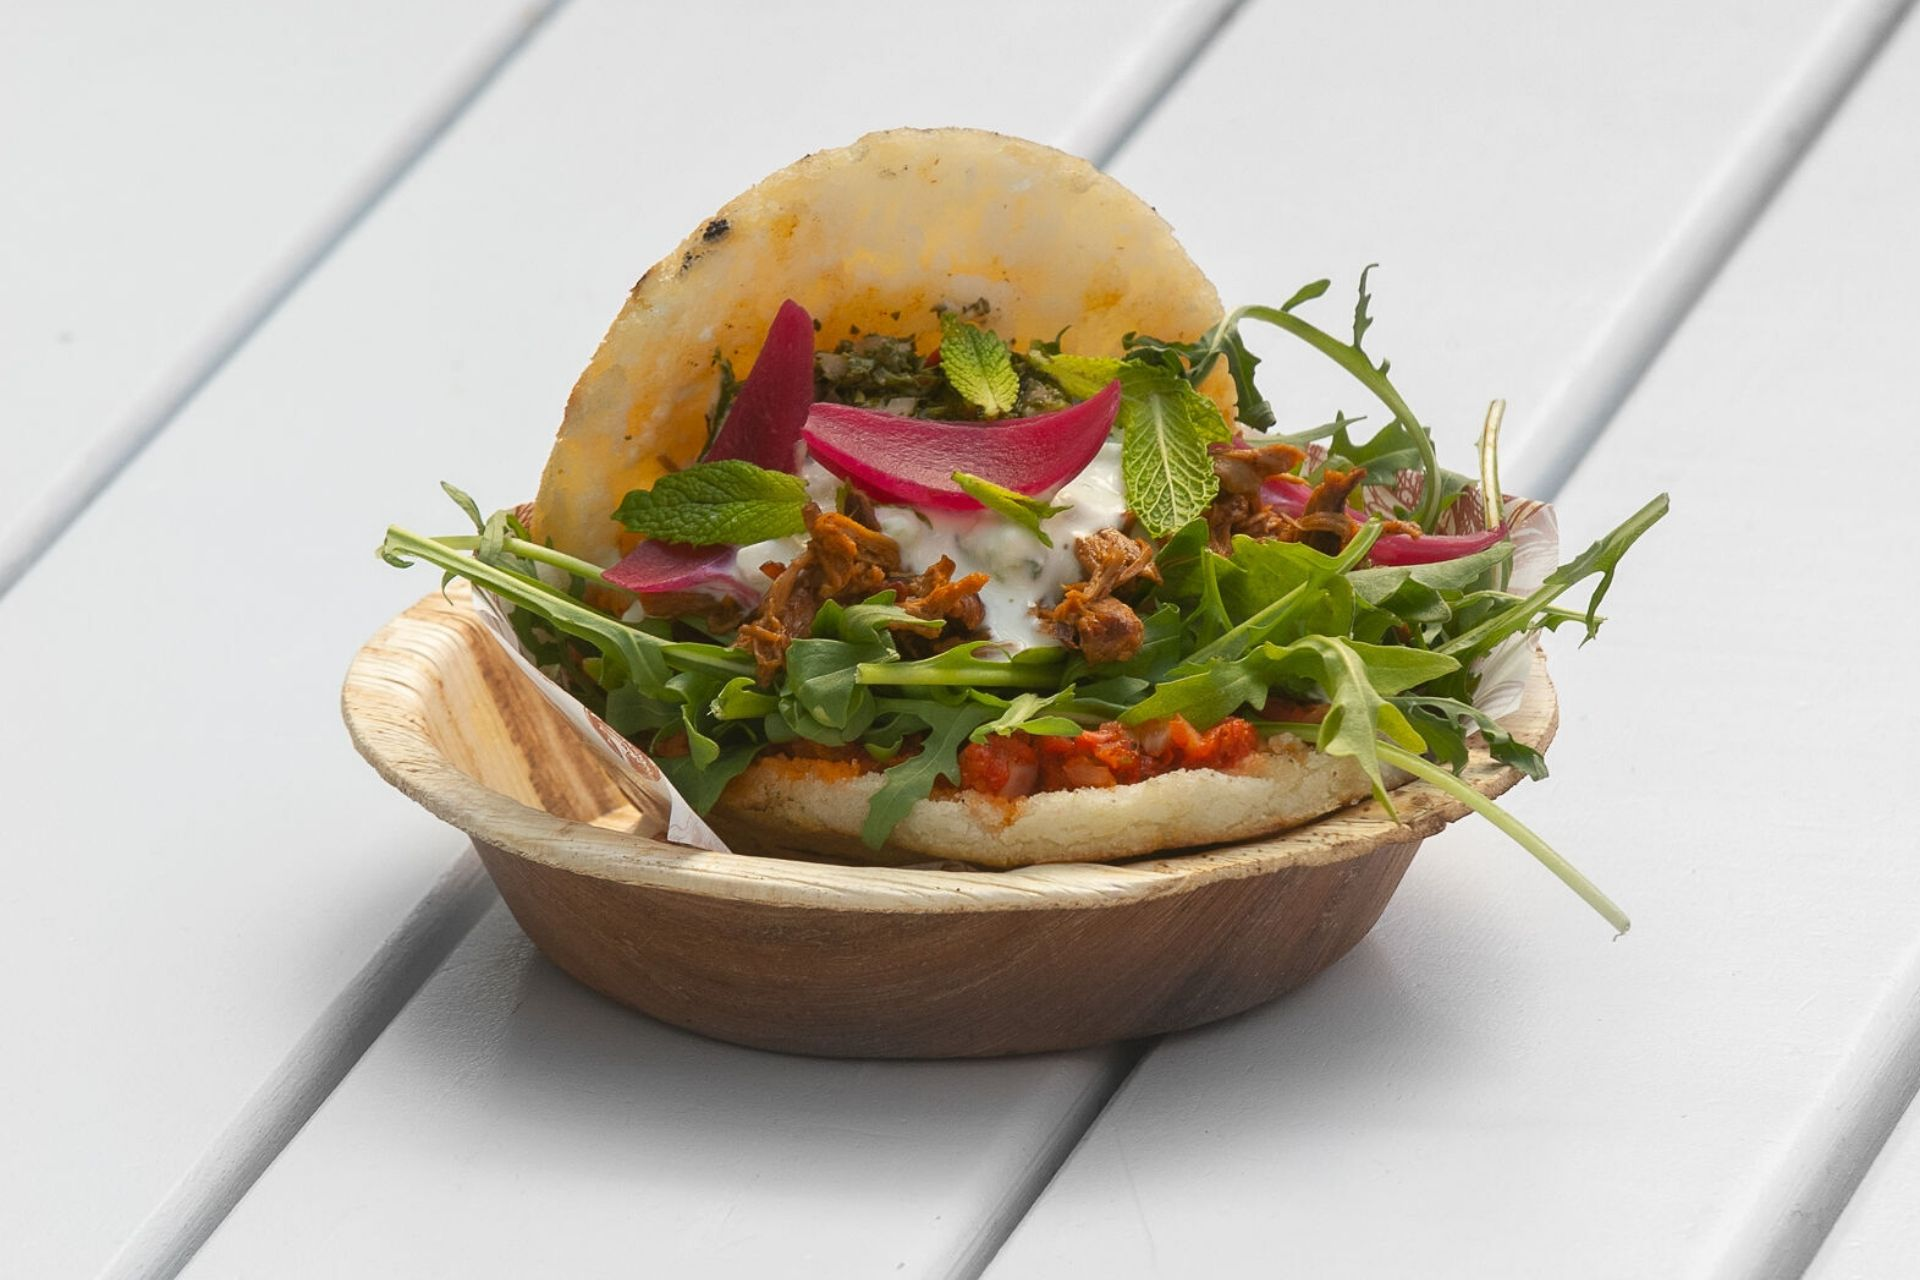 Arepa from Mar and Tierra at Auckland Fish Market